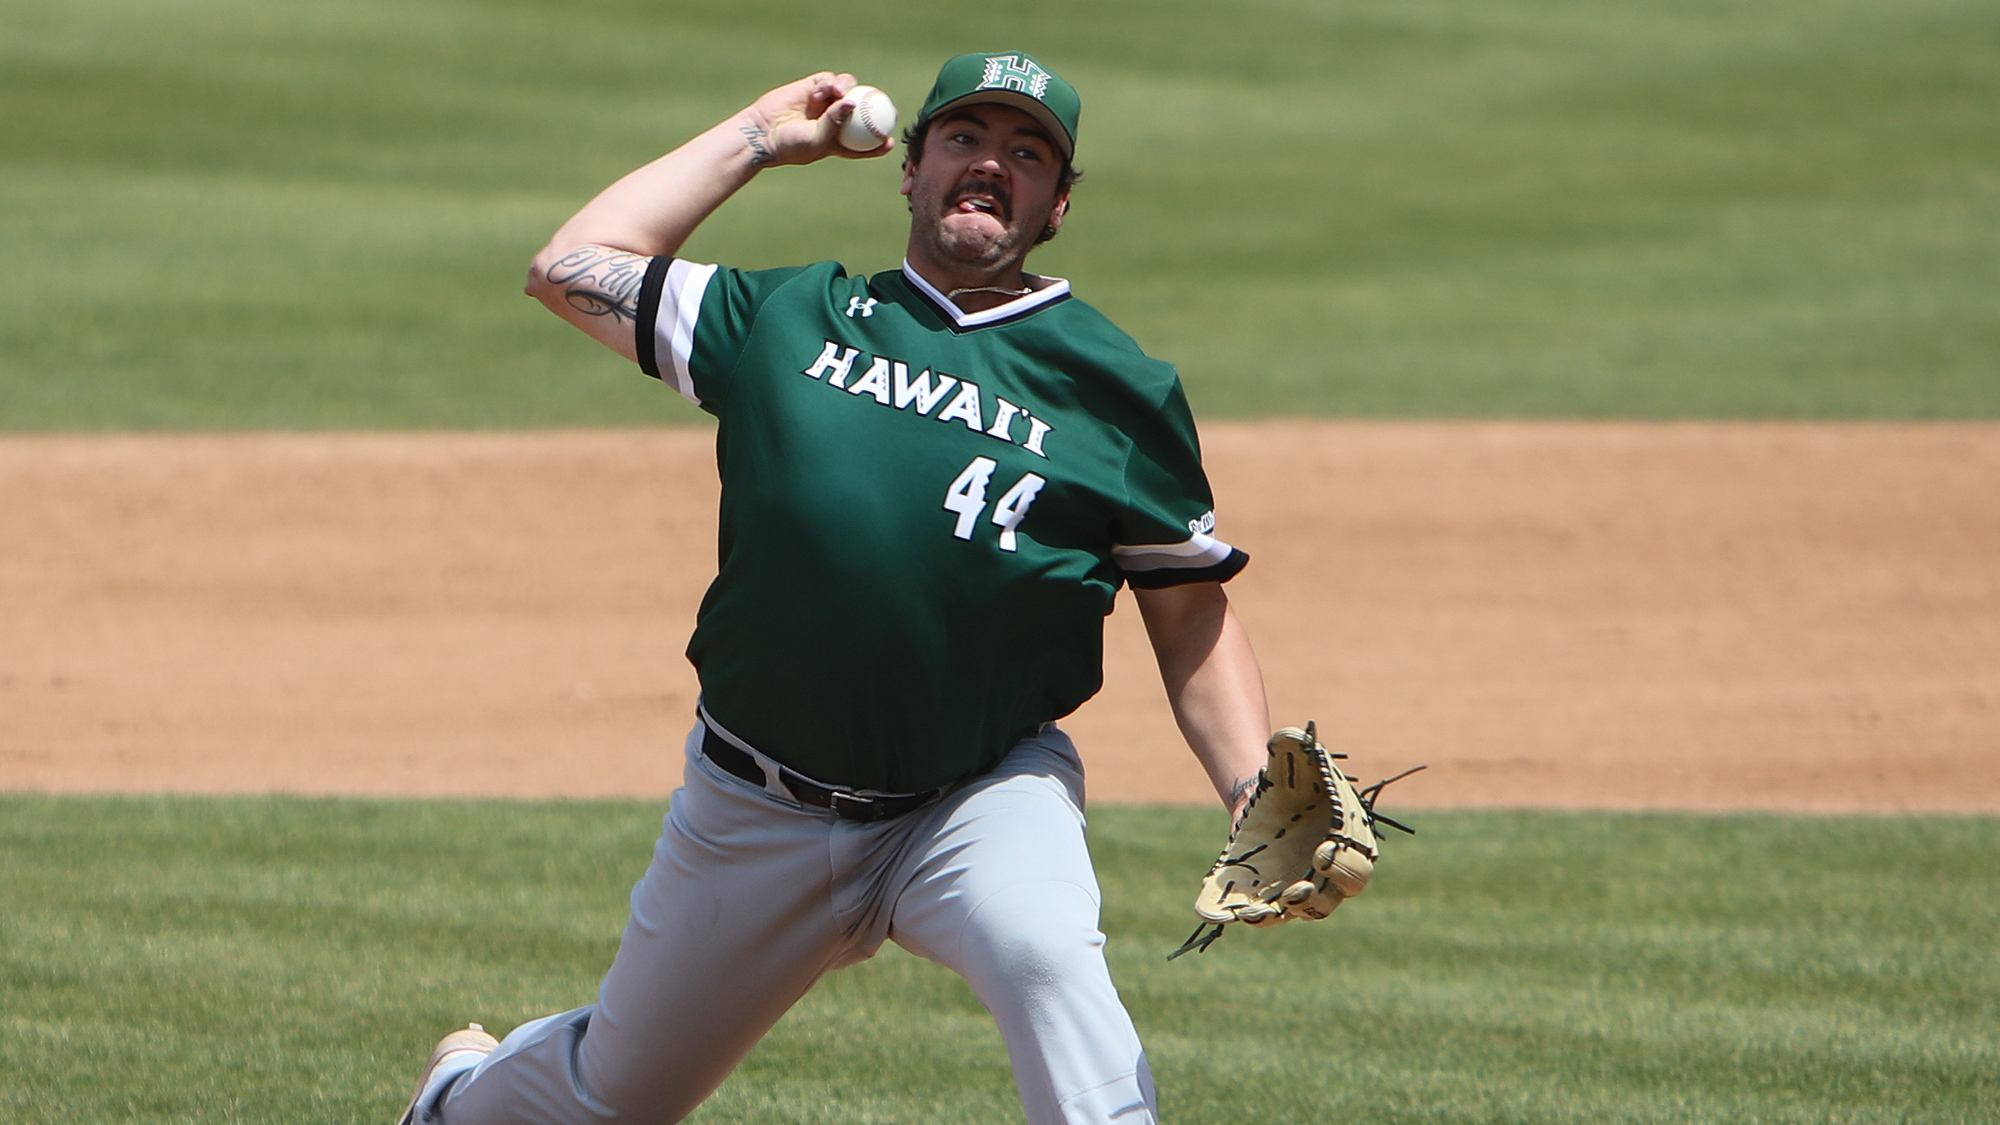 Logan Pouelsen - Baseball - University of Hawai'i at Manoa